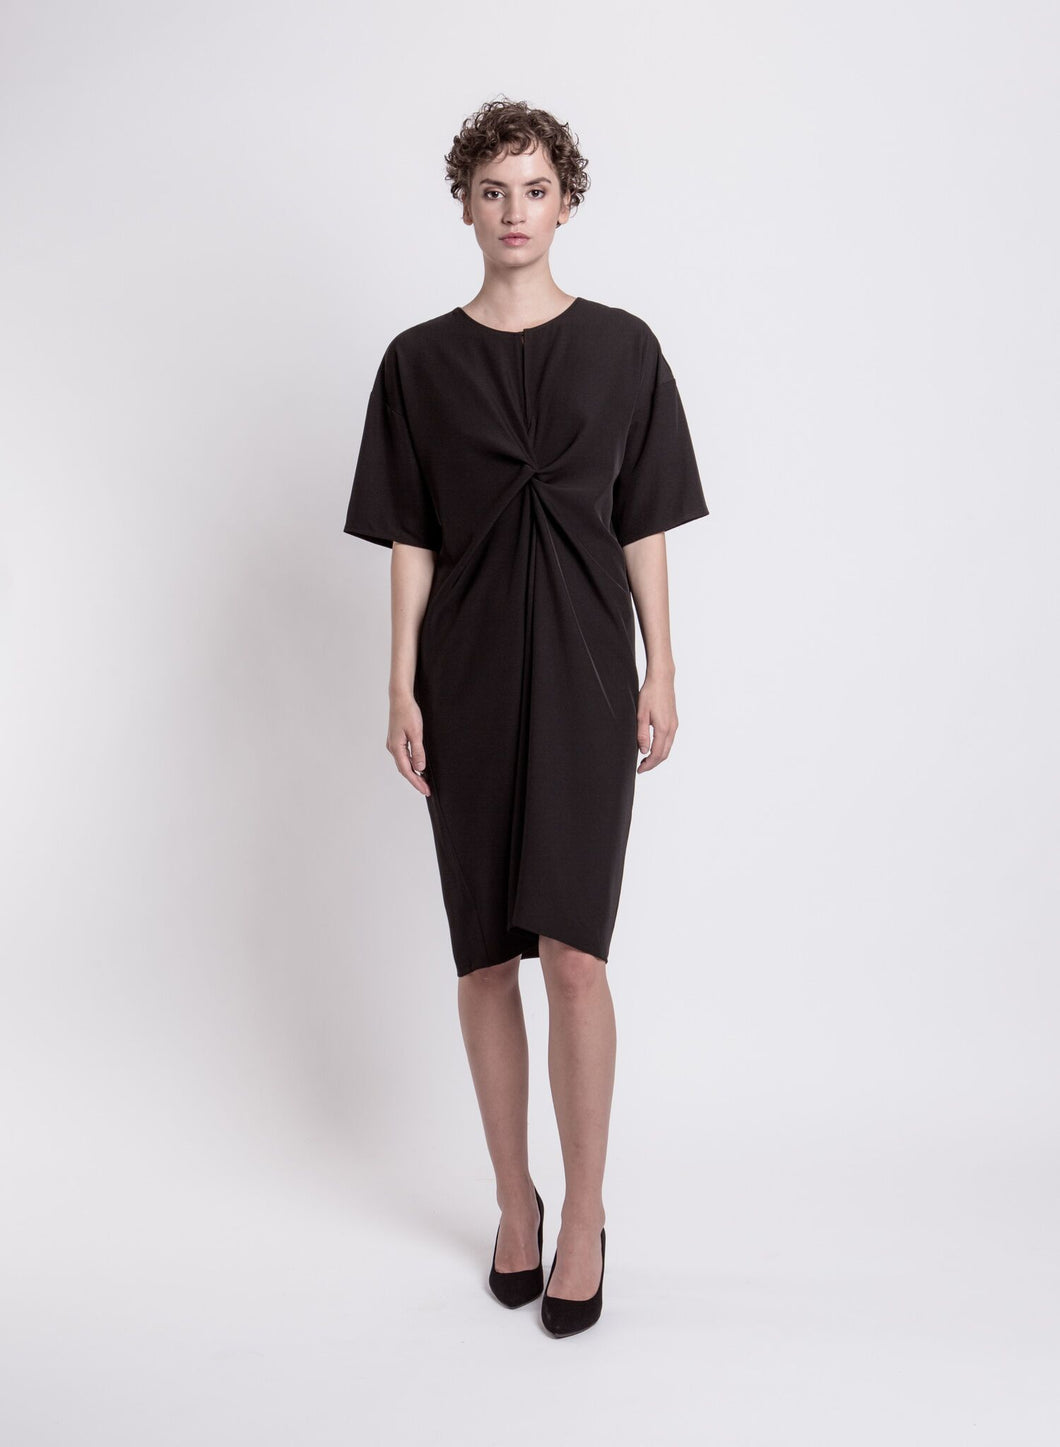 Sue dress, black